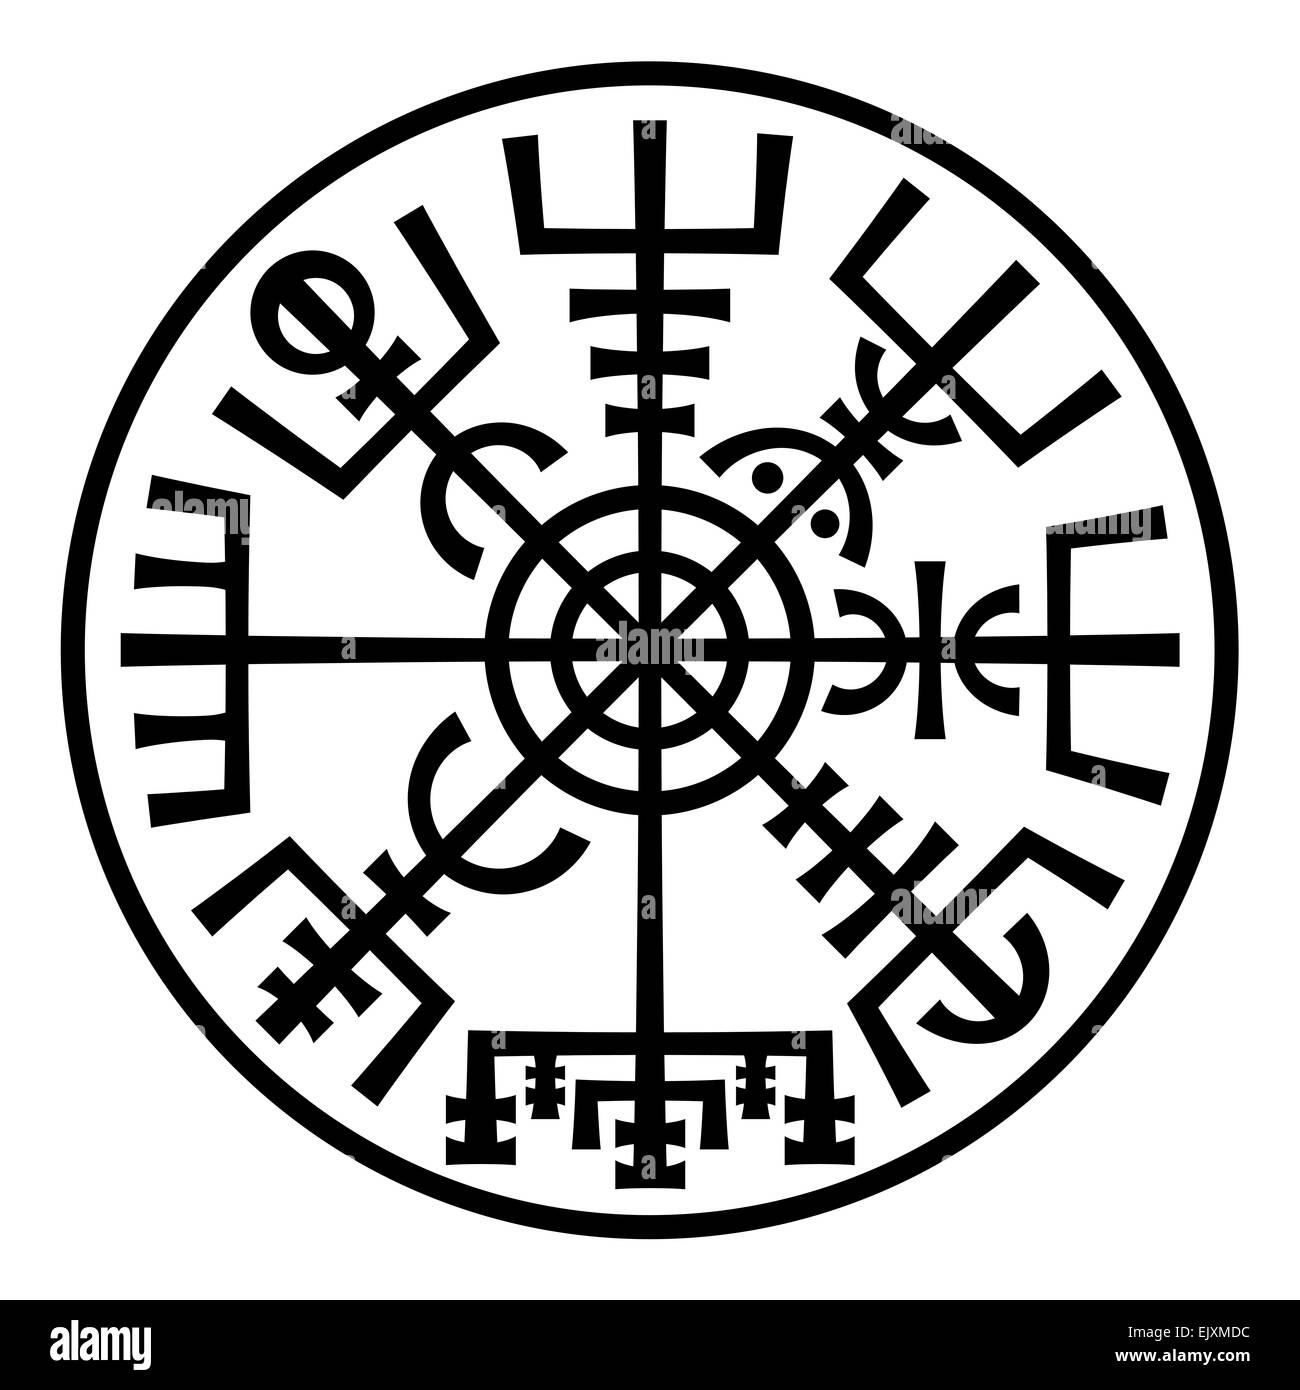 Medieval symbols meanings choice image symbol and sign ideas pagan symbol meanings images symbol and sign ideas pagan symbols and meanings all pagan symbols and biocorpaavc